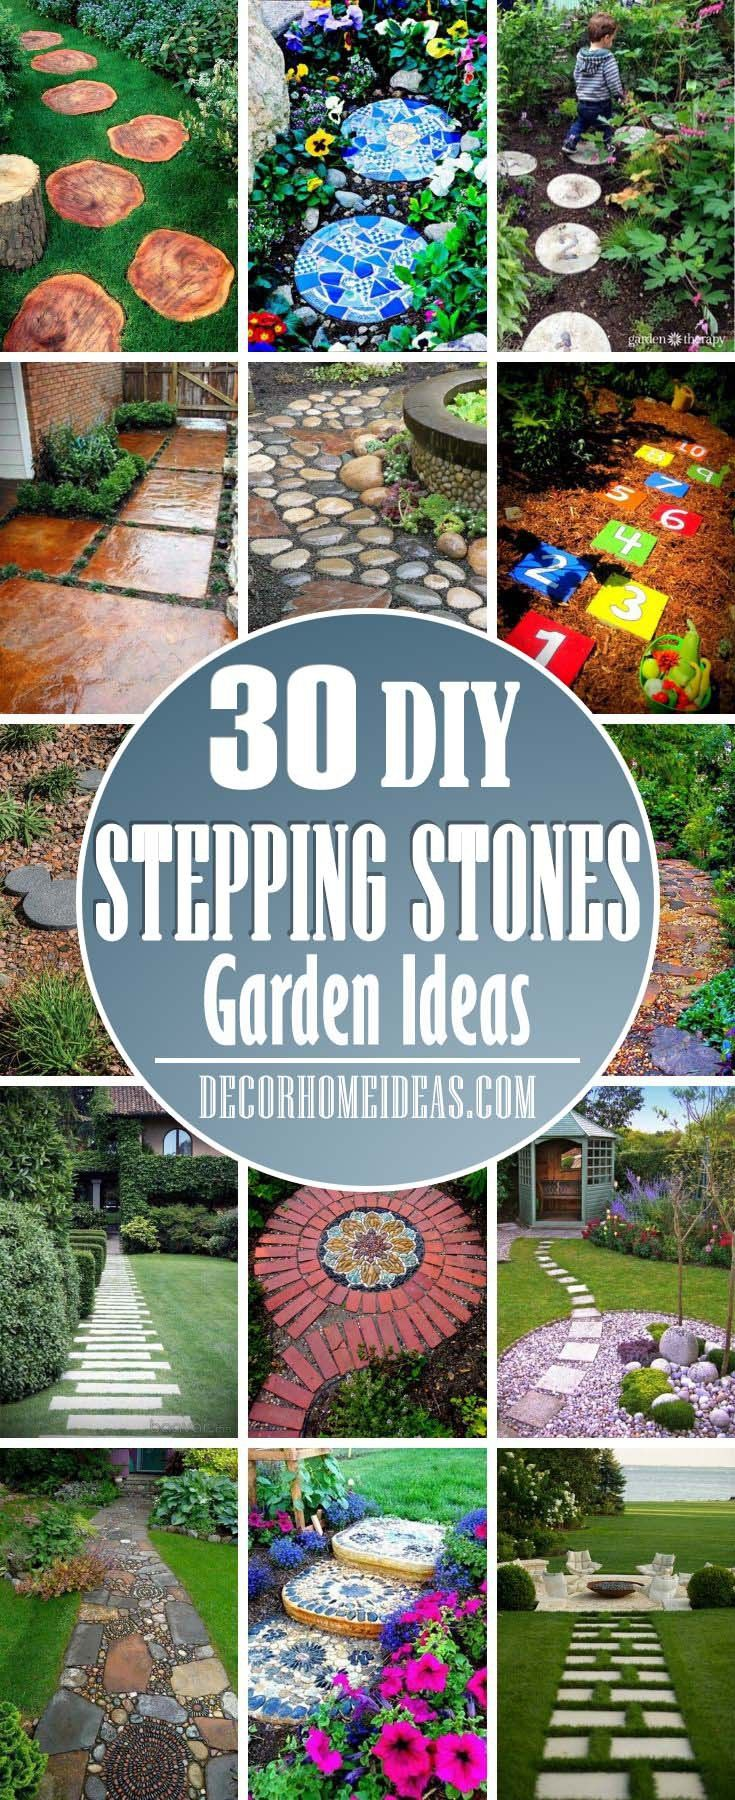 30 Best Stepping Stones Ideas For Your Backyard Decor Home Ideas Garden Stones Stepping Stones Garden Stepping Stones Backyard diy stepping stones